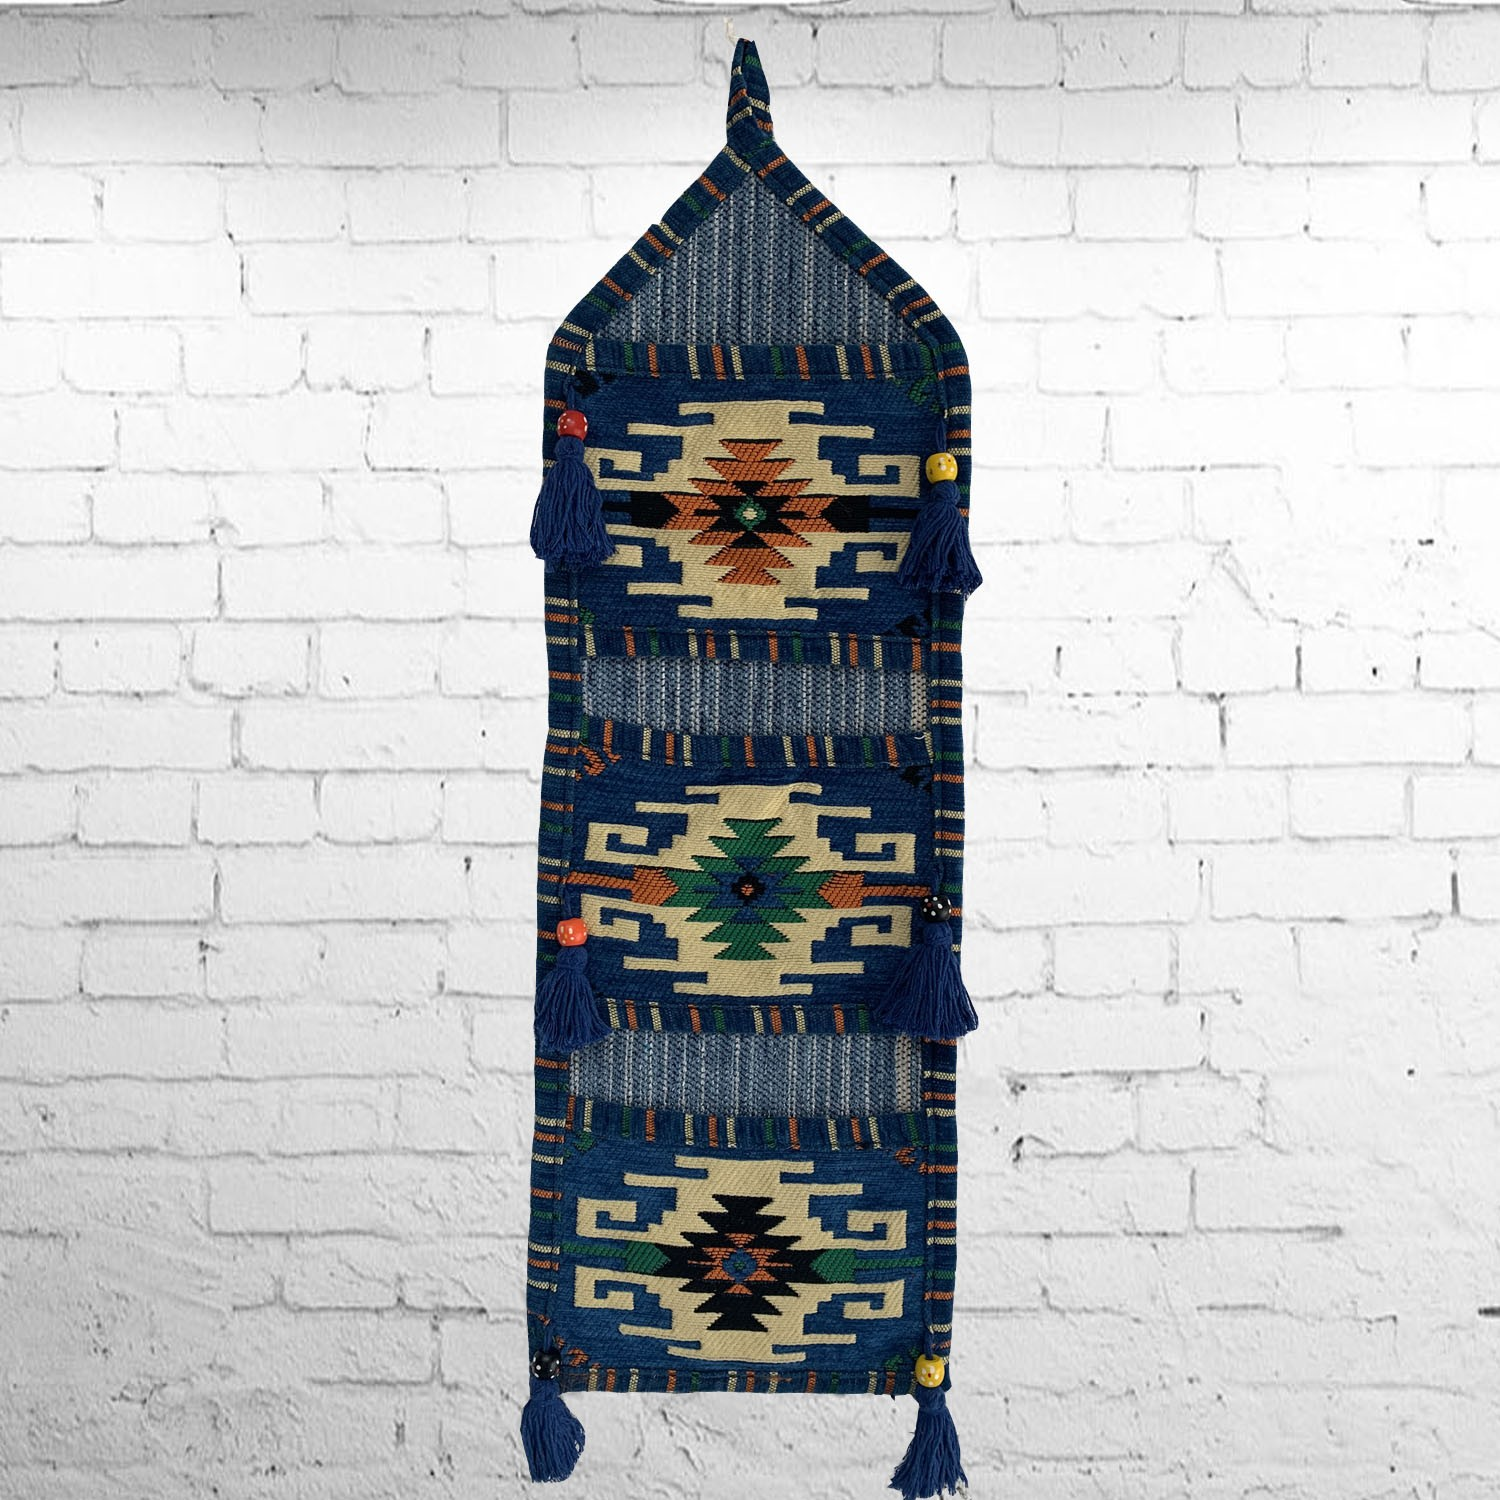 Bedouin style traditional kilim wall hanging